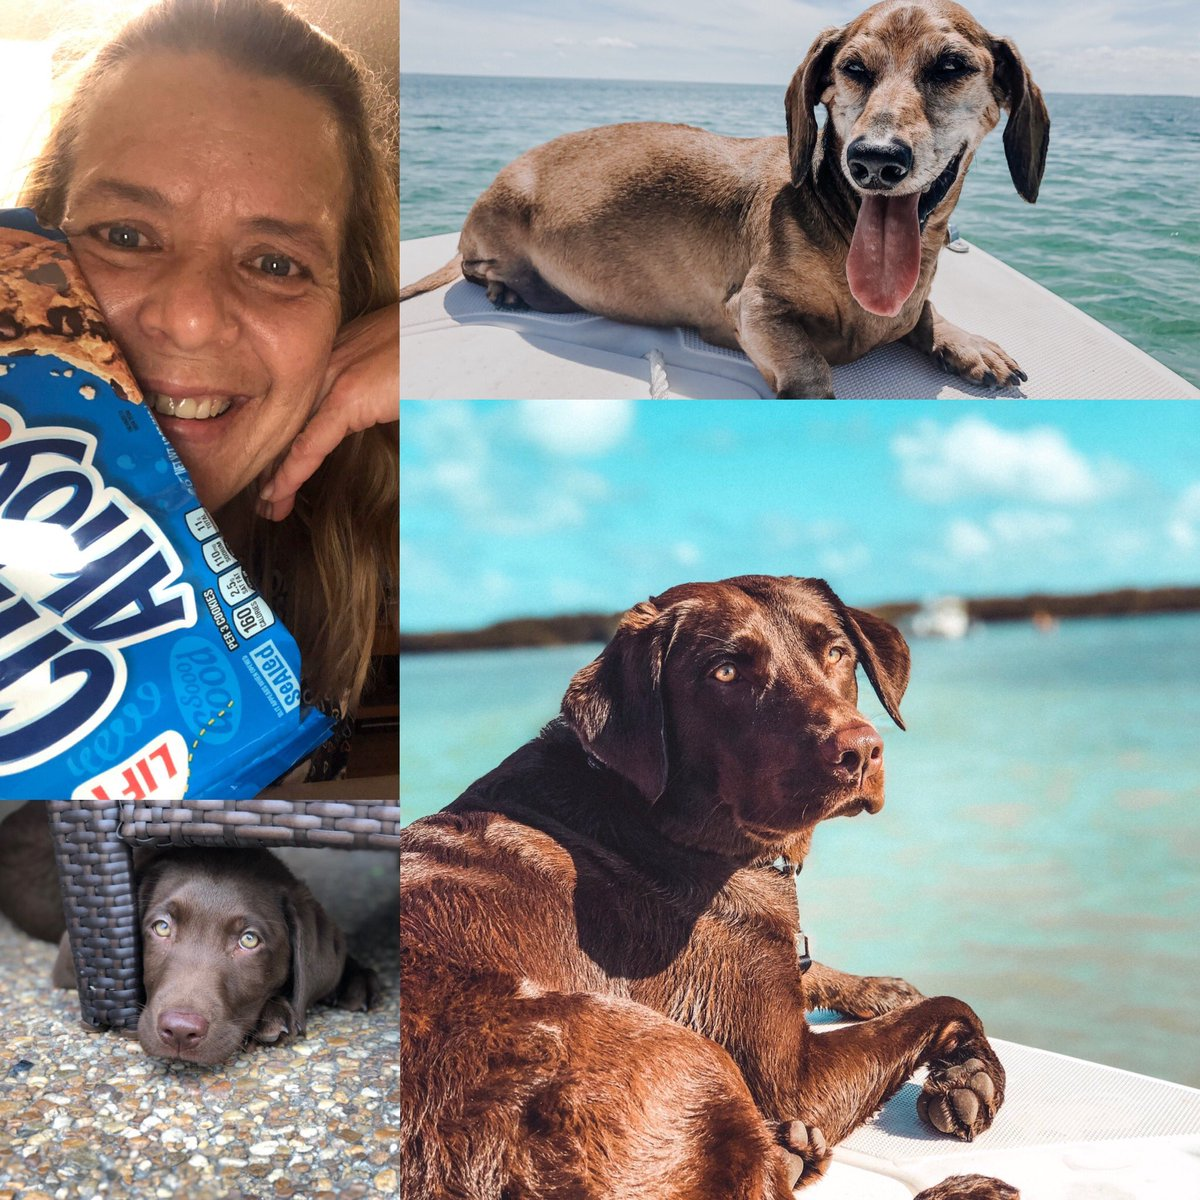 @ChipsAhoy #chipsahoy #happiertogether #sweepstakes https://t.co/CLmgnHwibn